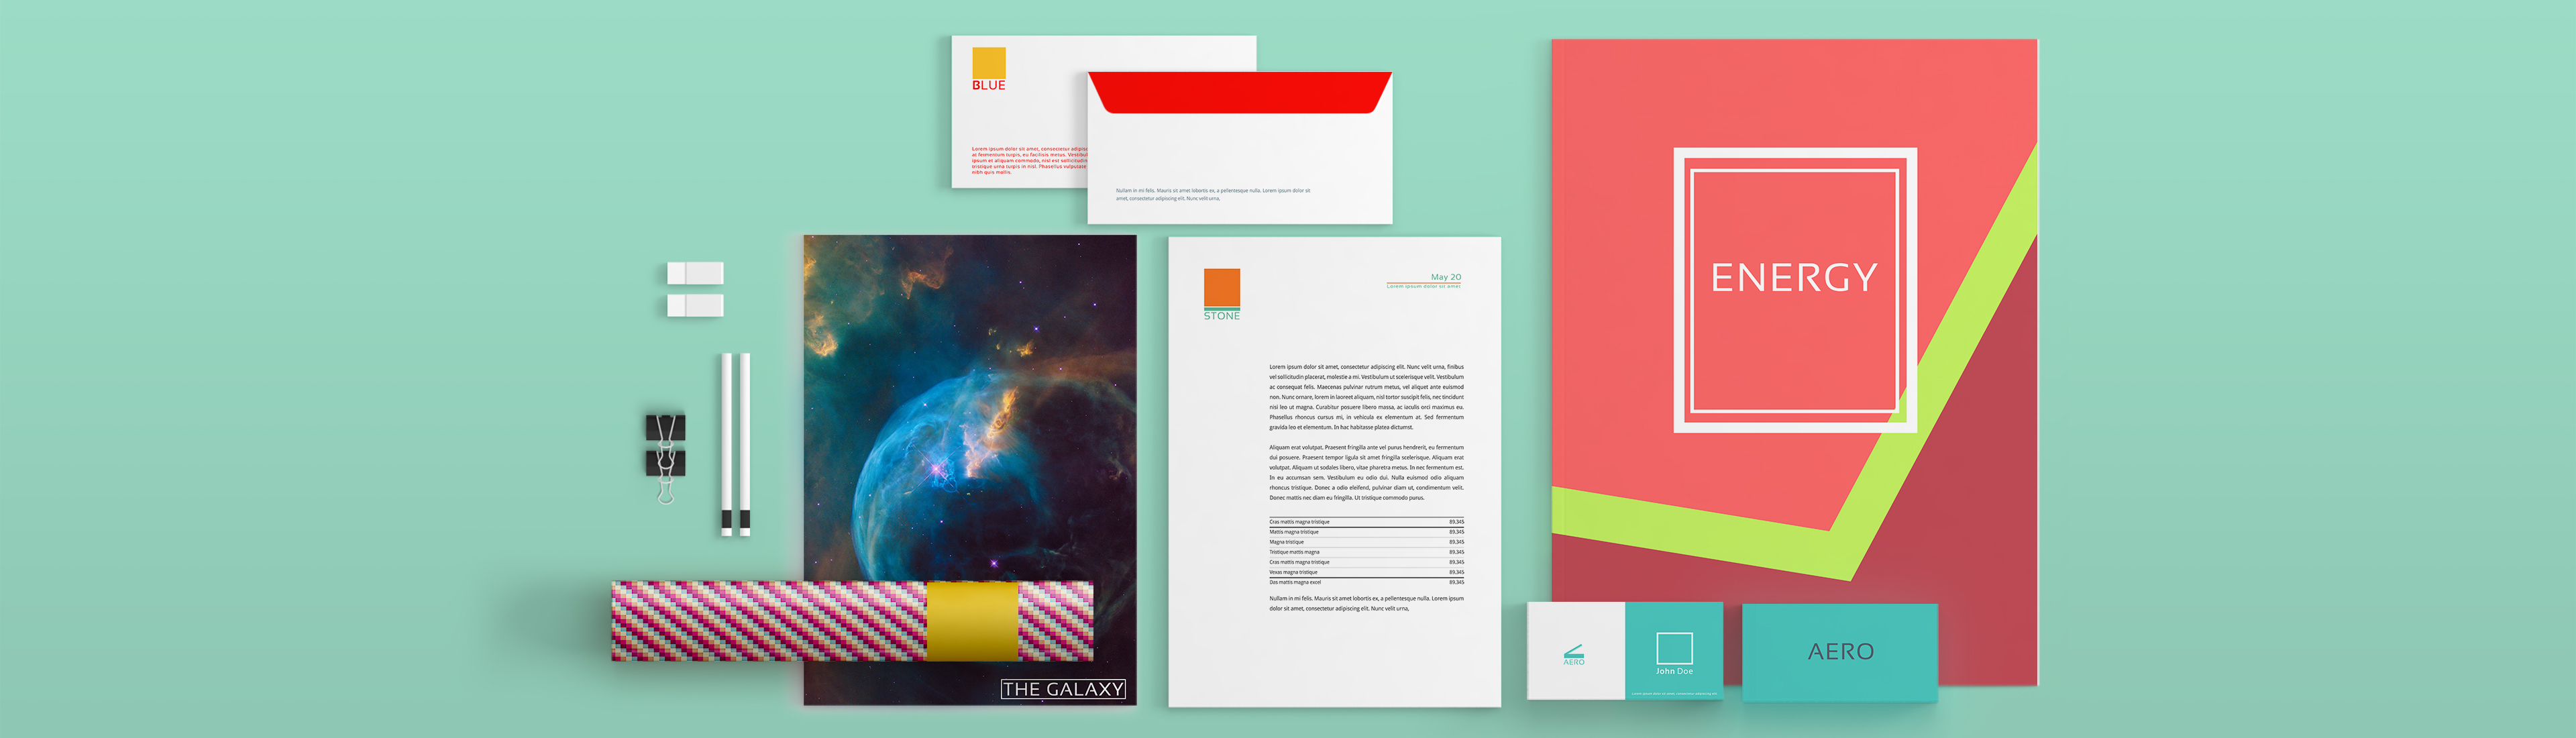 postplus front page stationery